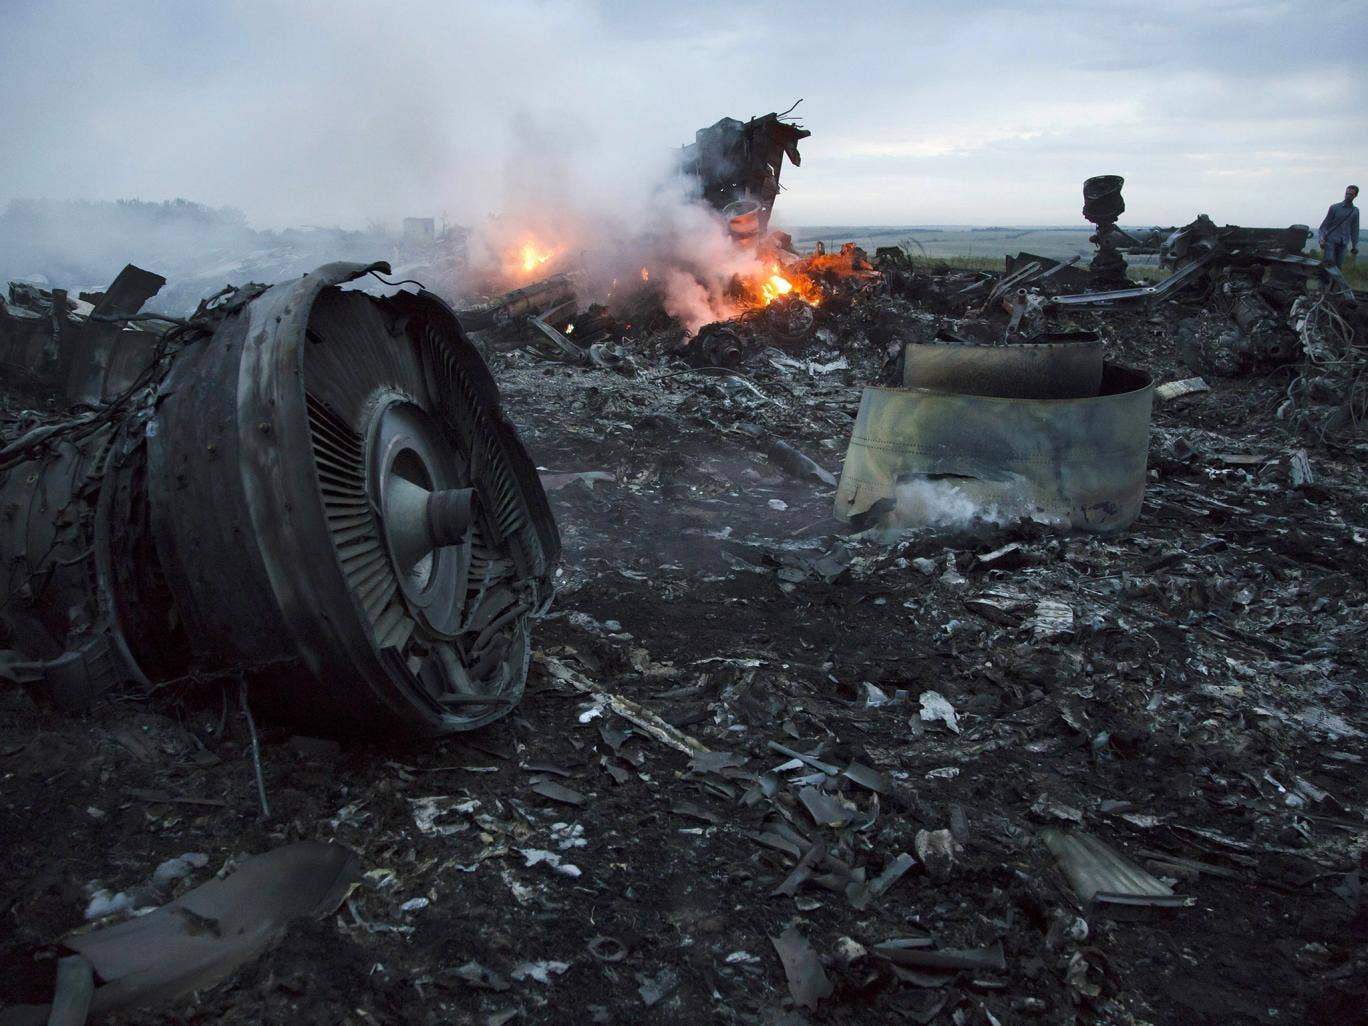 The crash site of the MH17 flight between the two villages of Rozsypne and Hrabove